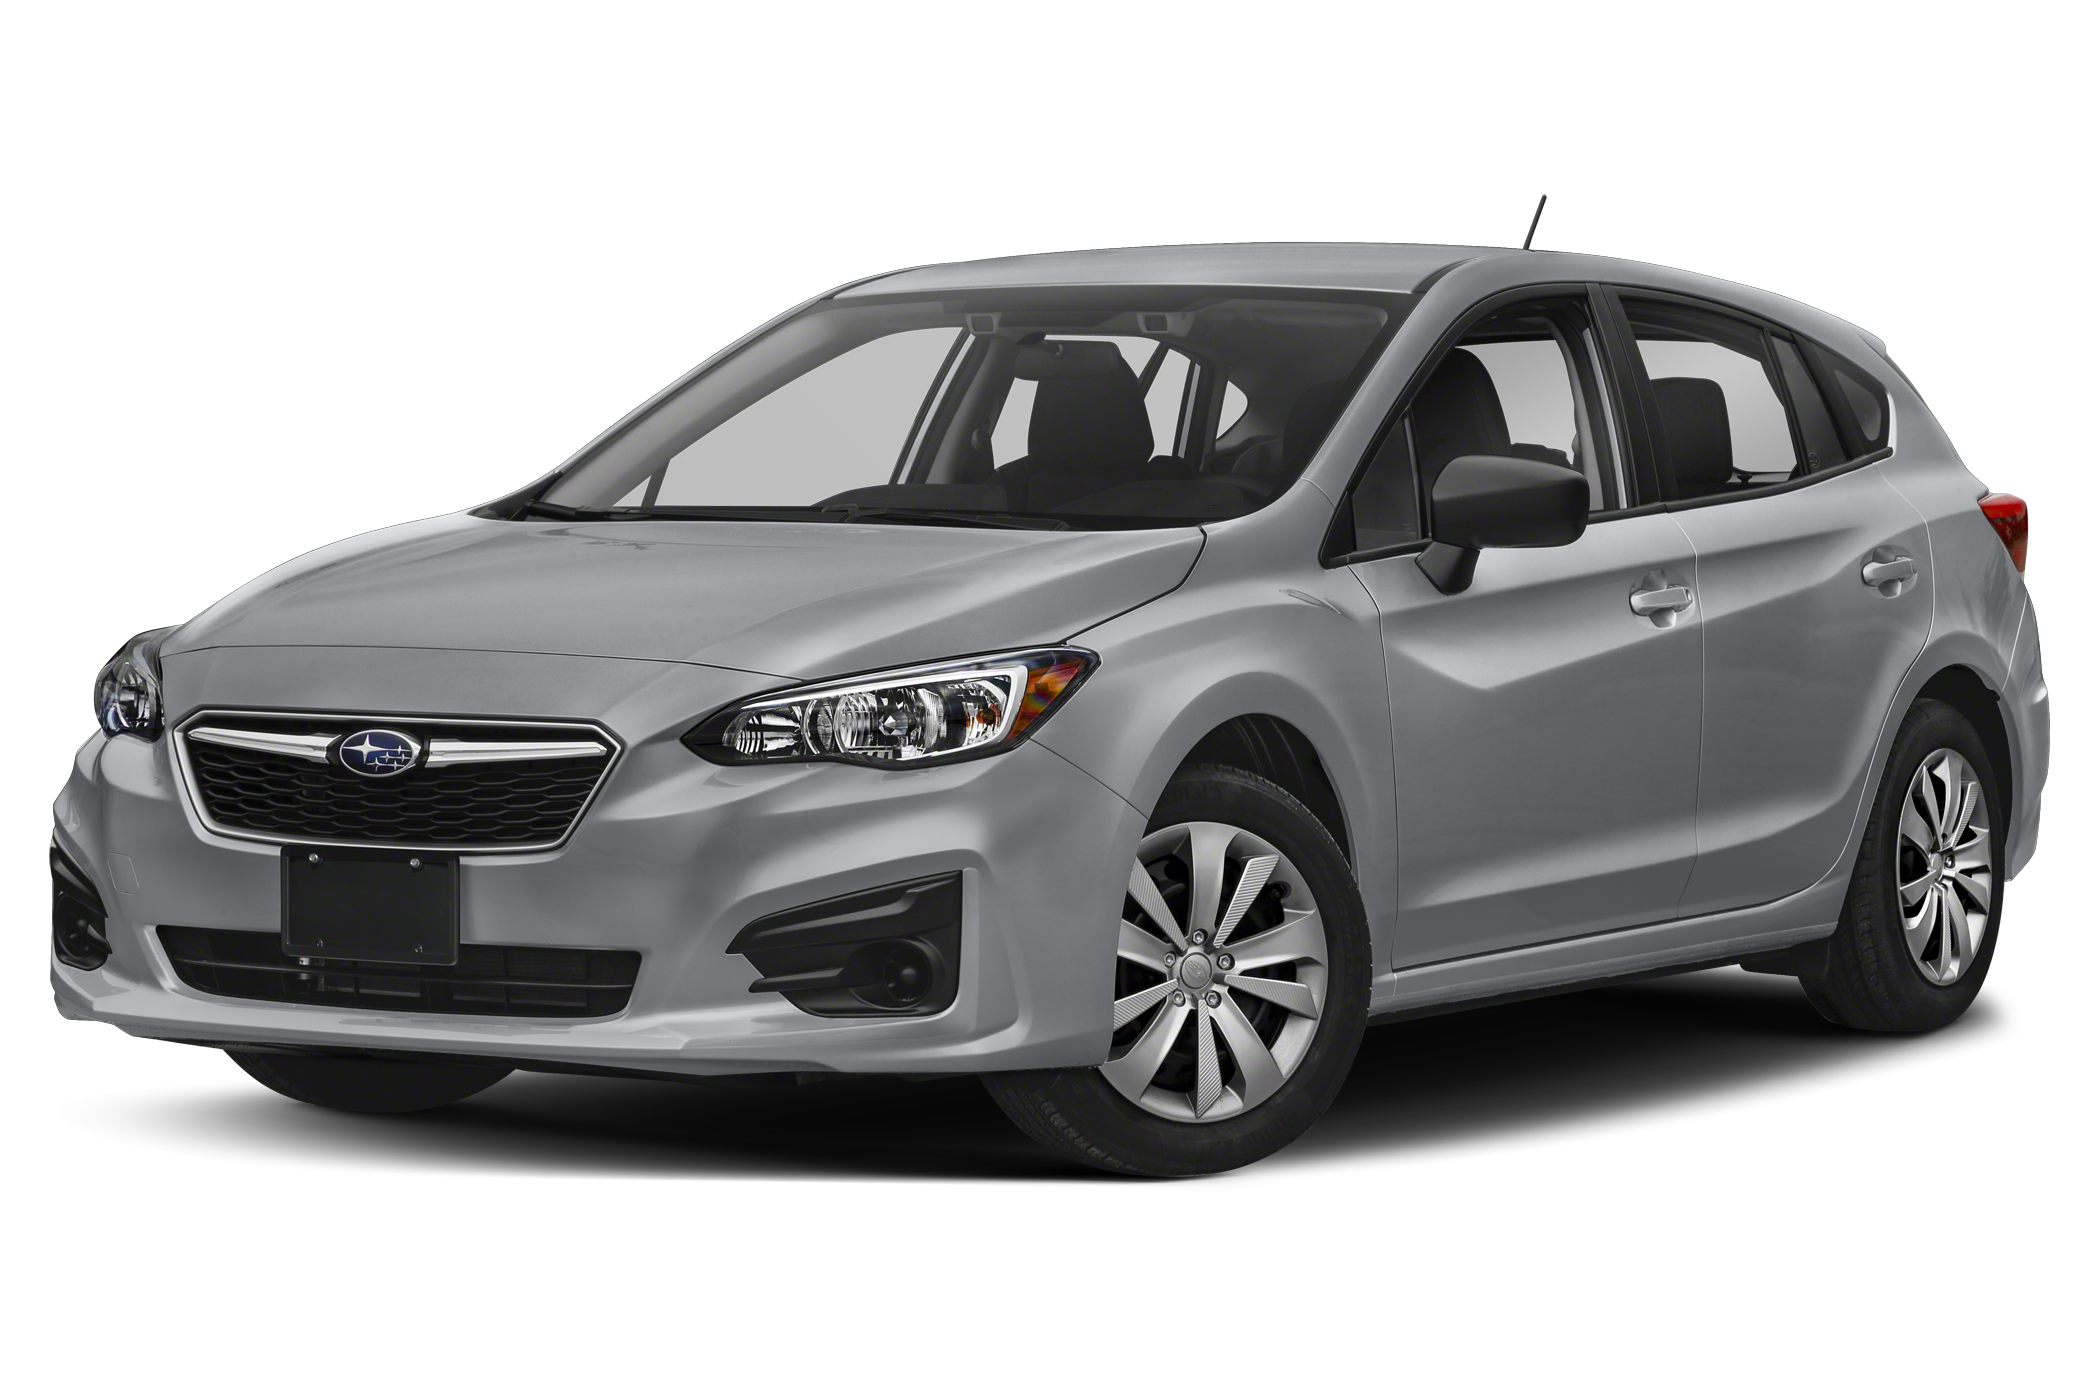 2019 Subaru Impreza 2.0I Premium 4Dr All-Wheel Drive Hatchback Specs And  Prices - 2015 Subaru Impreza Hatchback Owners Manual